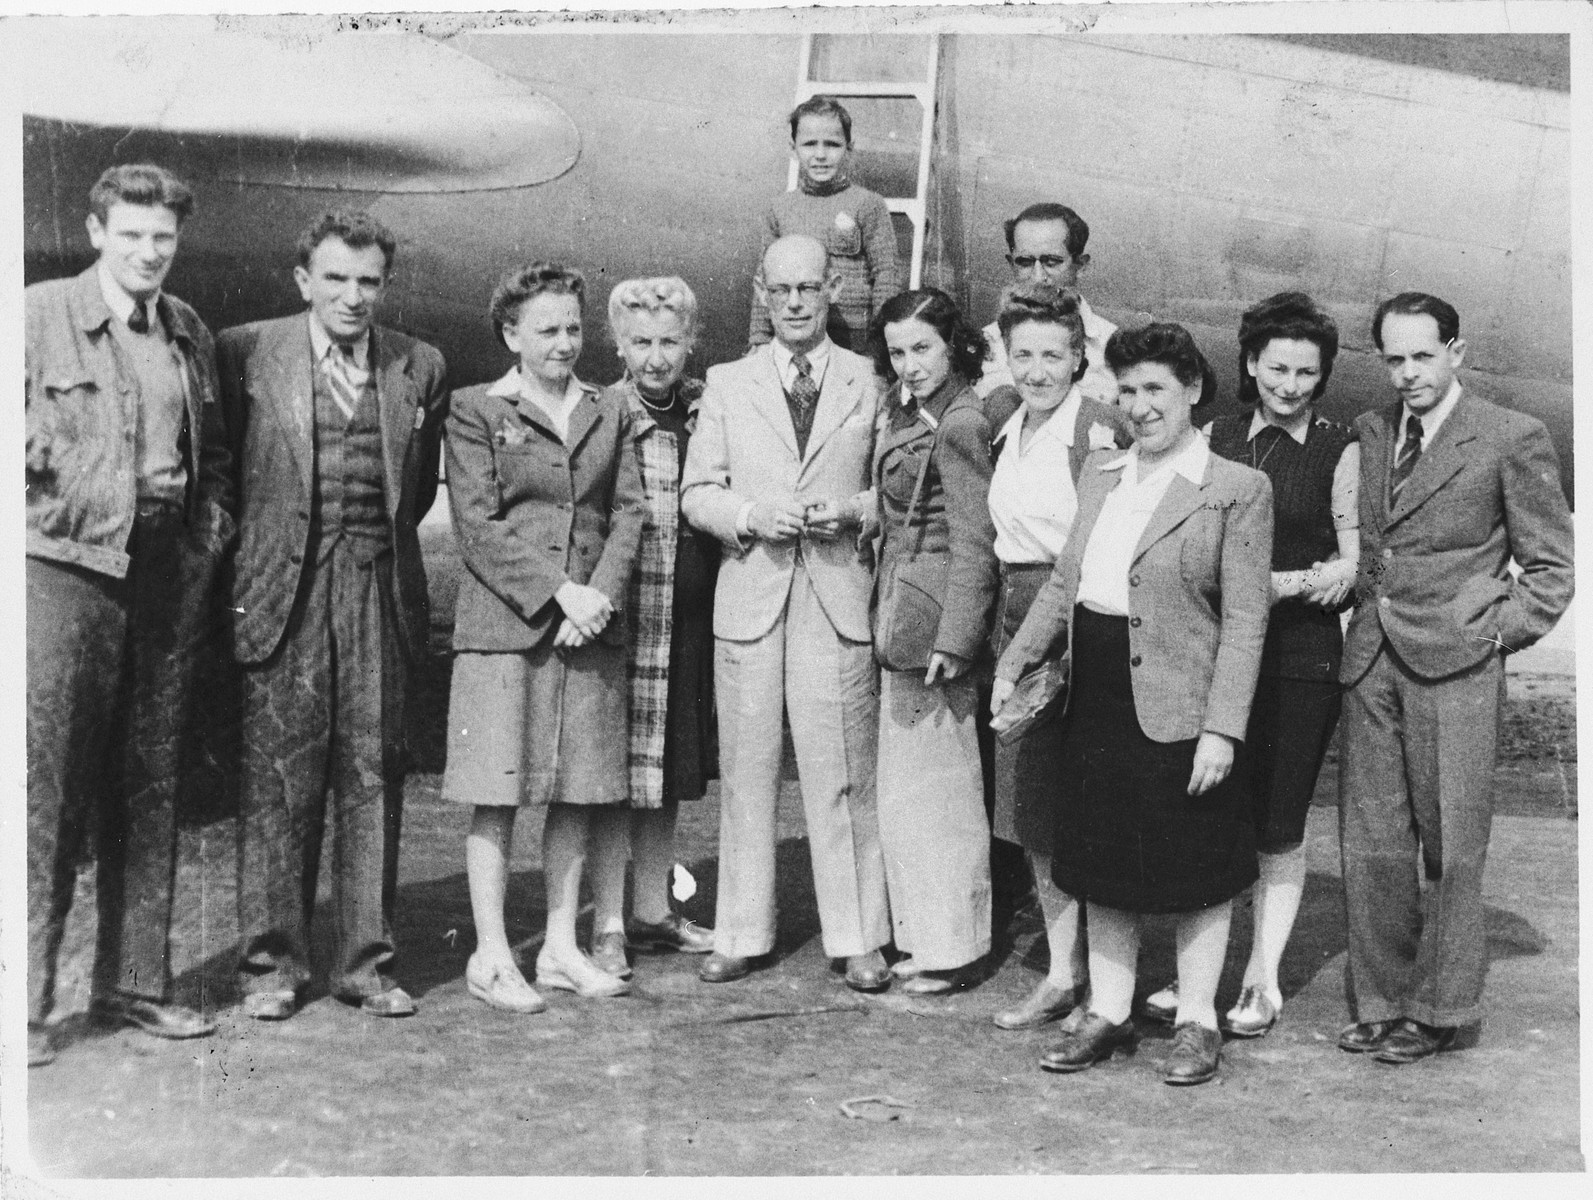 Group portrait of Jewish refugees at the Shanghai airport.  Among those pictured are Alfred Brosan (far left), Rudolf Brosan (second from the left), Anna Brosan (third from the right in the foreground), and Richard Brosan (far right).